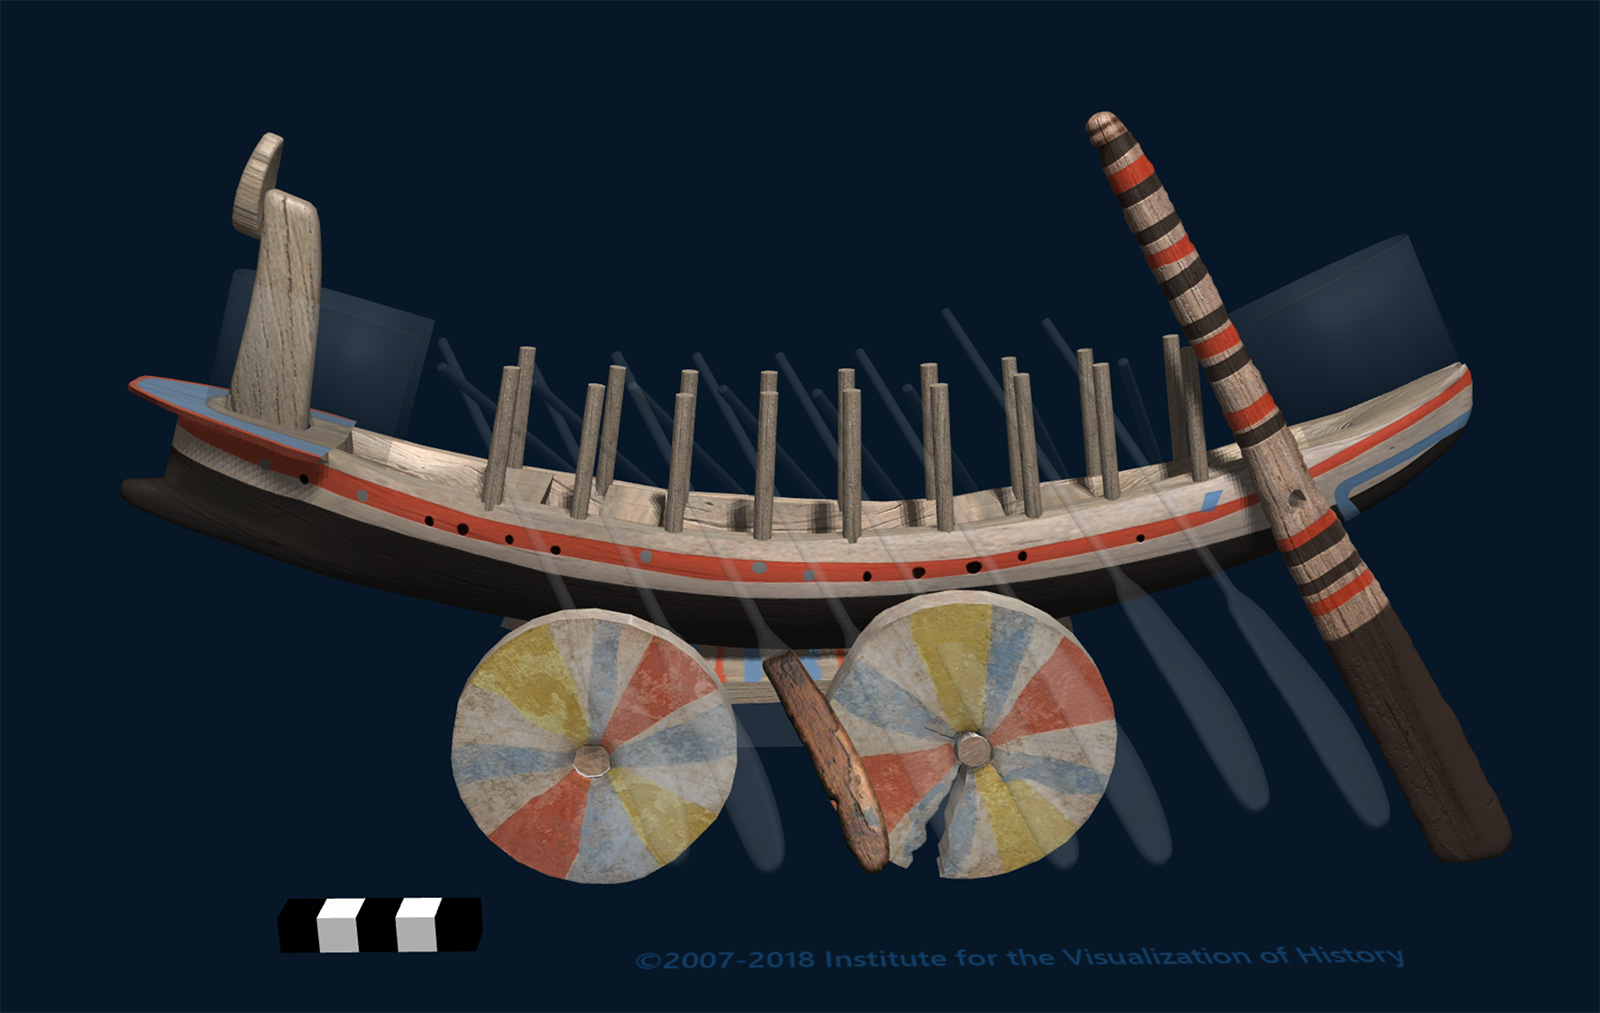 A 3-D computer model of the wooden boat shown above.